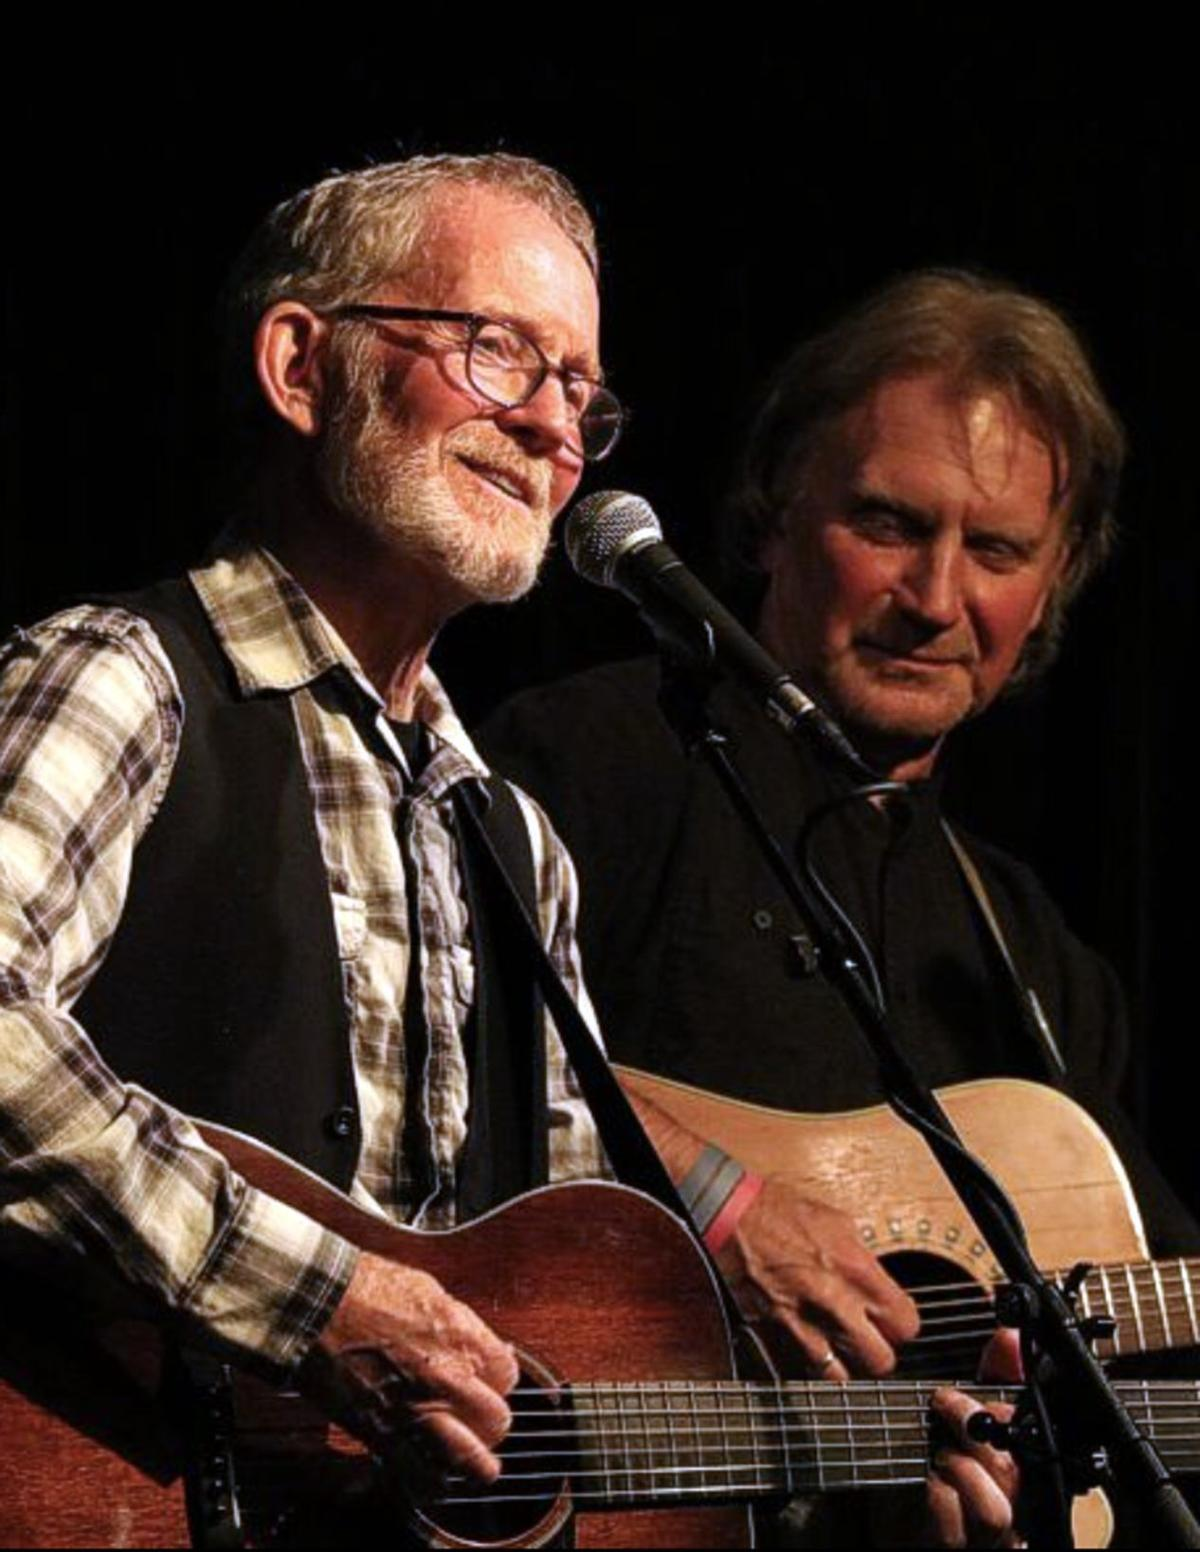 Johnsmith, Dan Sebranek, White Gull Inn, performance, music, live music, music series, concert series